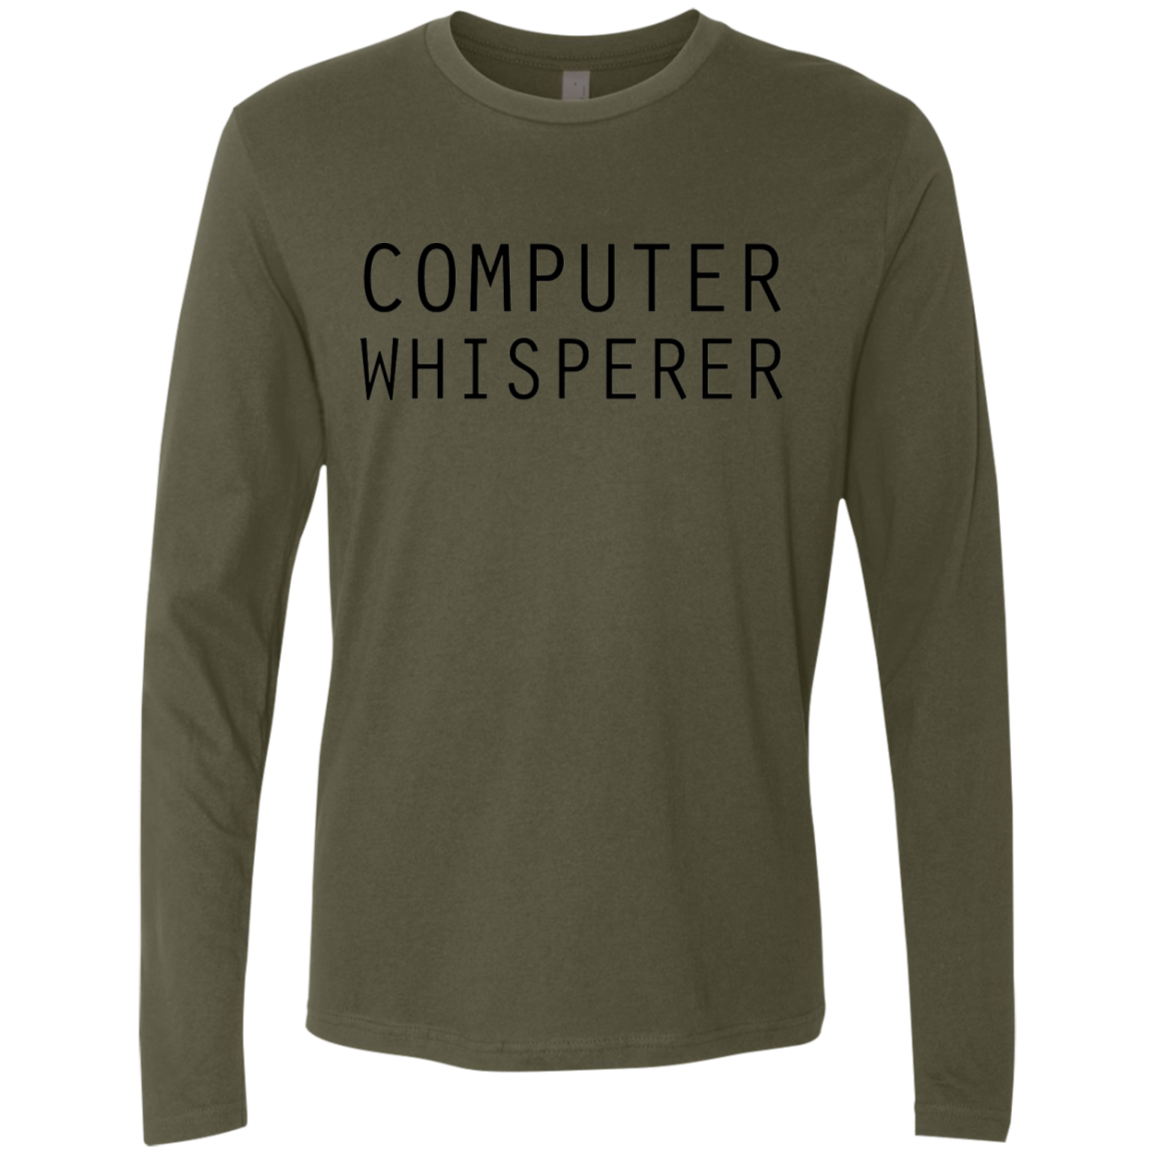 Computer Whisperer Men's Long Sleeve Tee - Trendy Tees